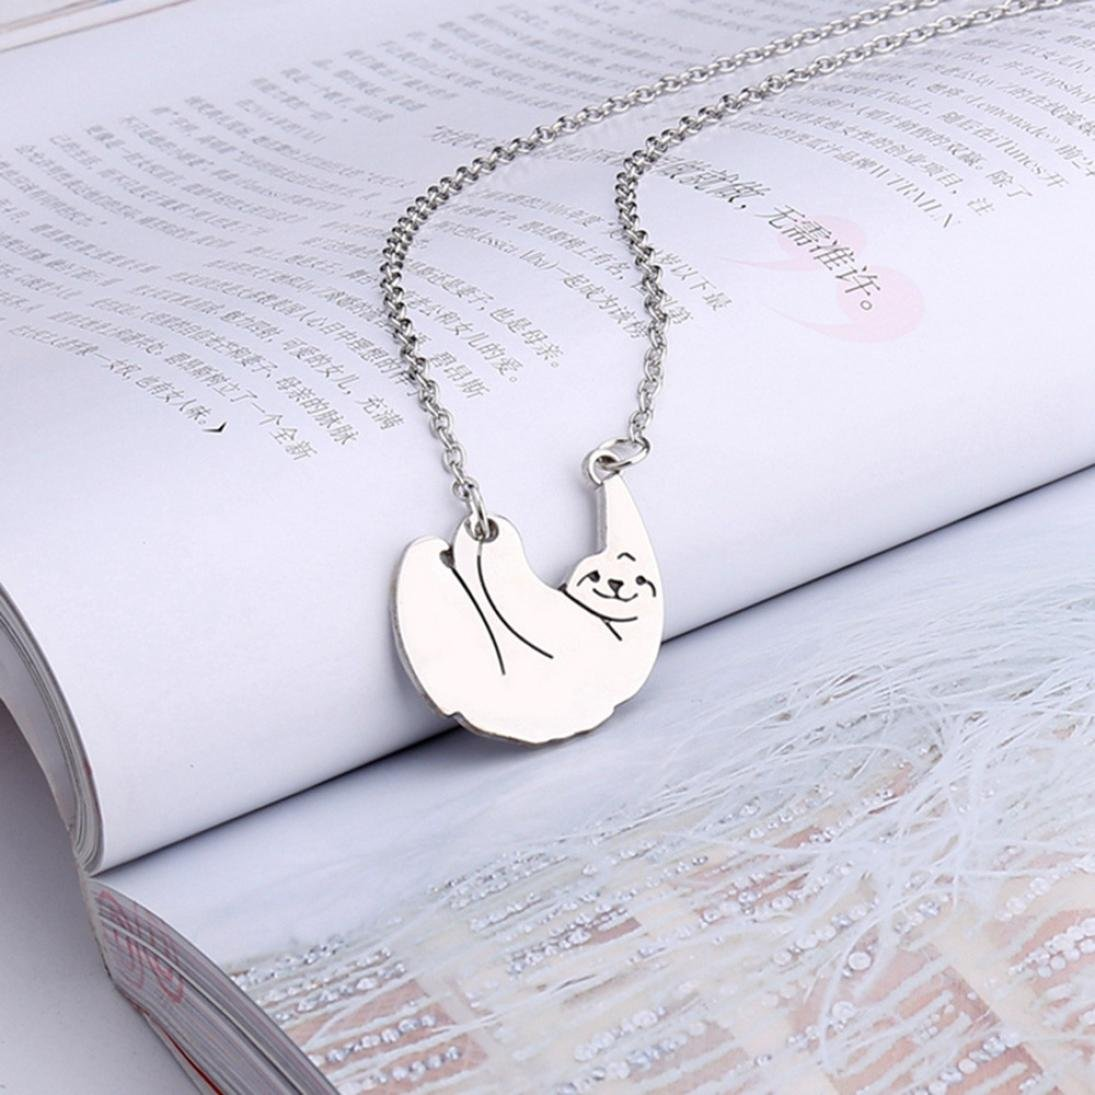 LLguz Simple Women Fashionable Creative Personally Sloth Necklace Small Lazy Person Pendant Necklace Jewelry (Silver)